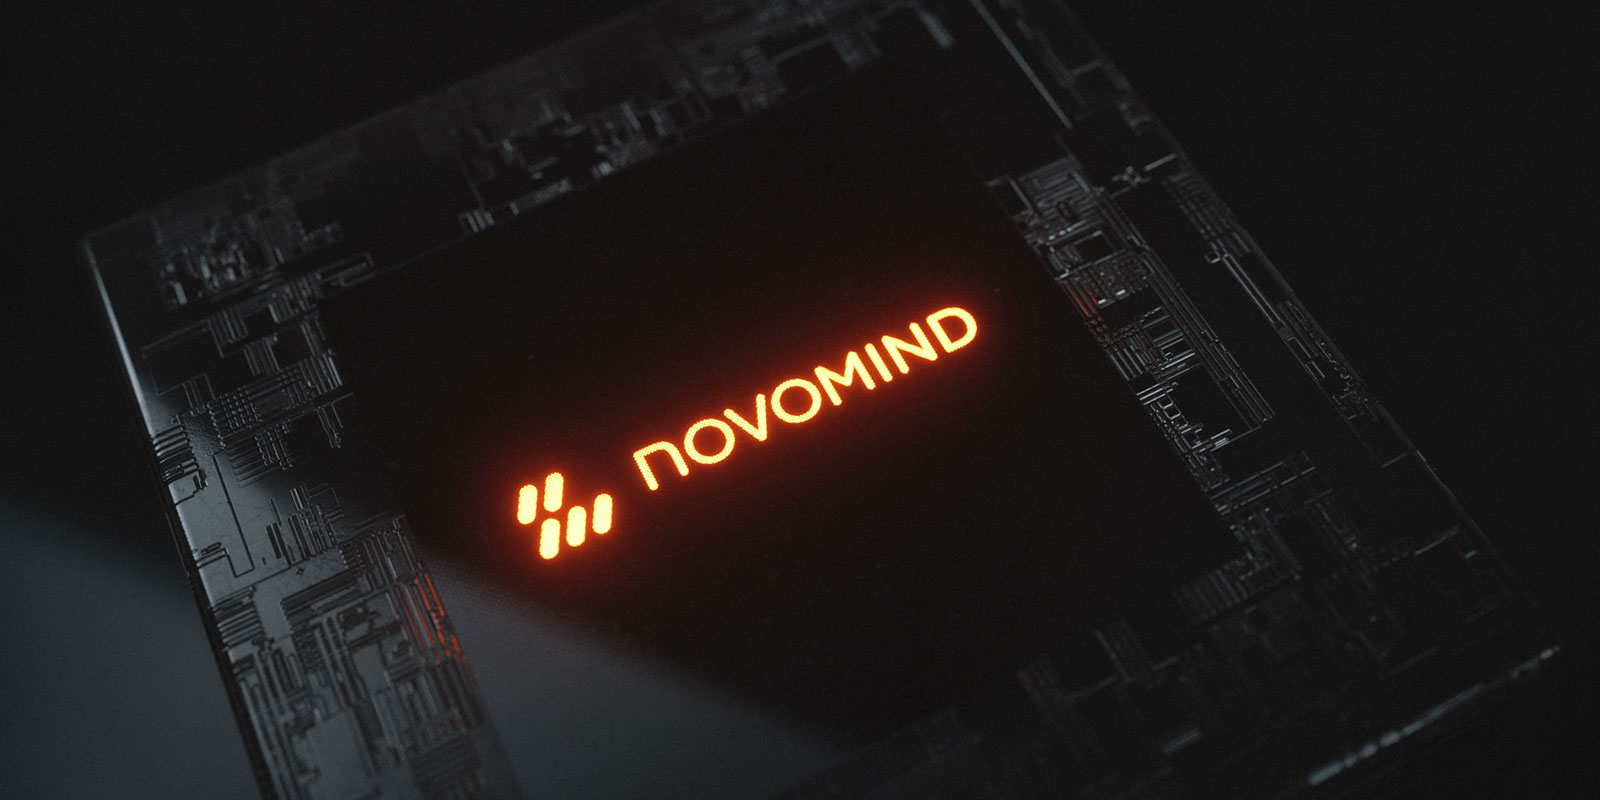 We are Novomind